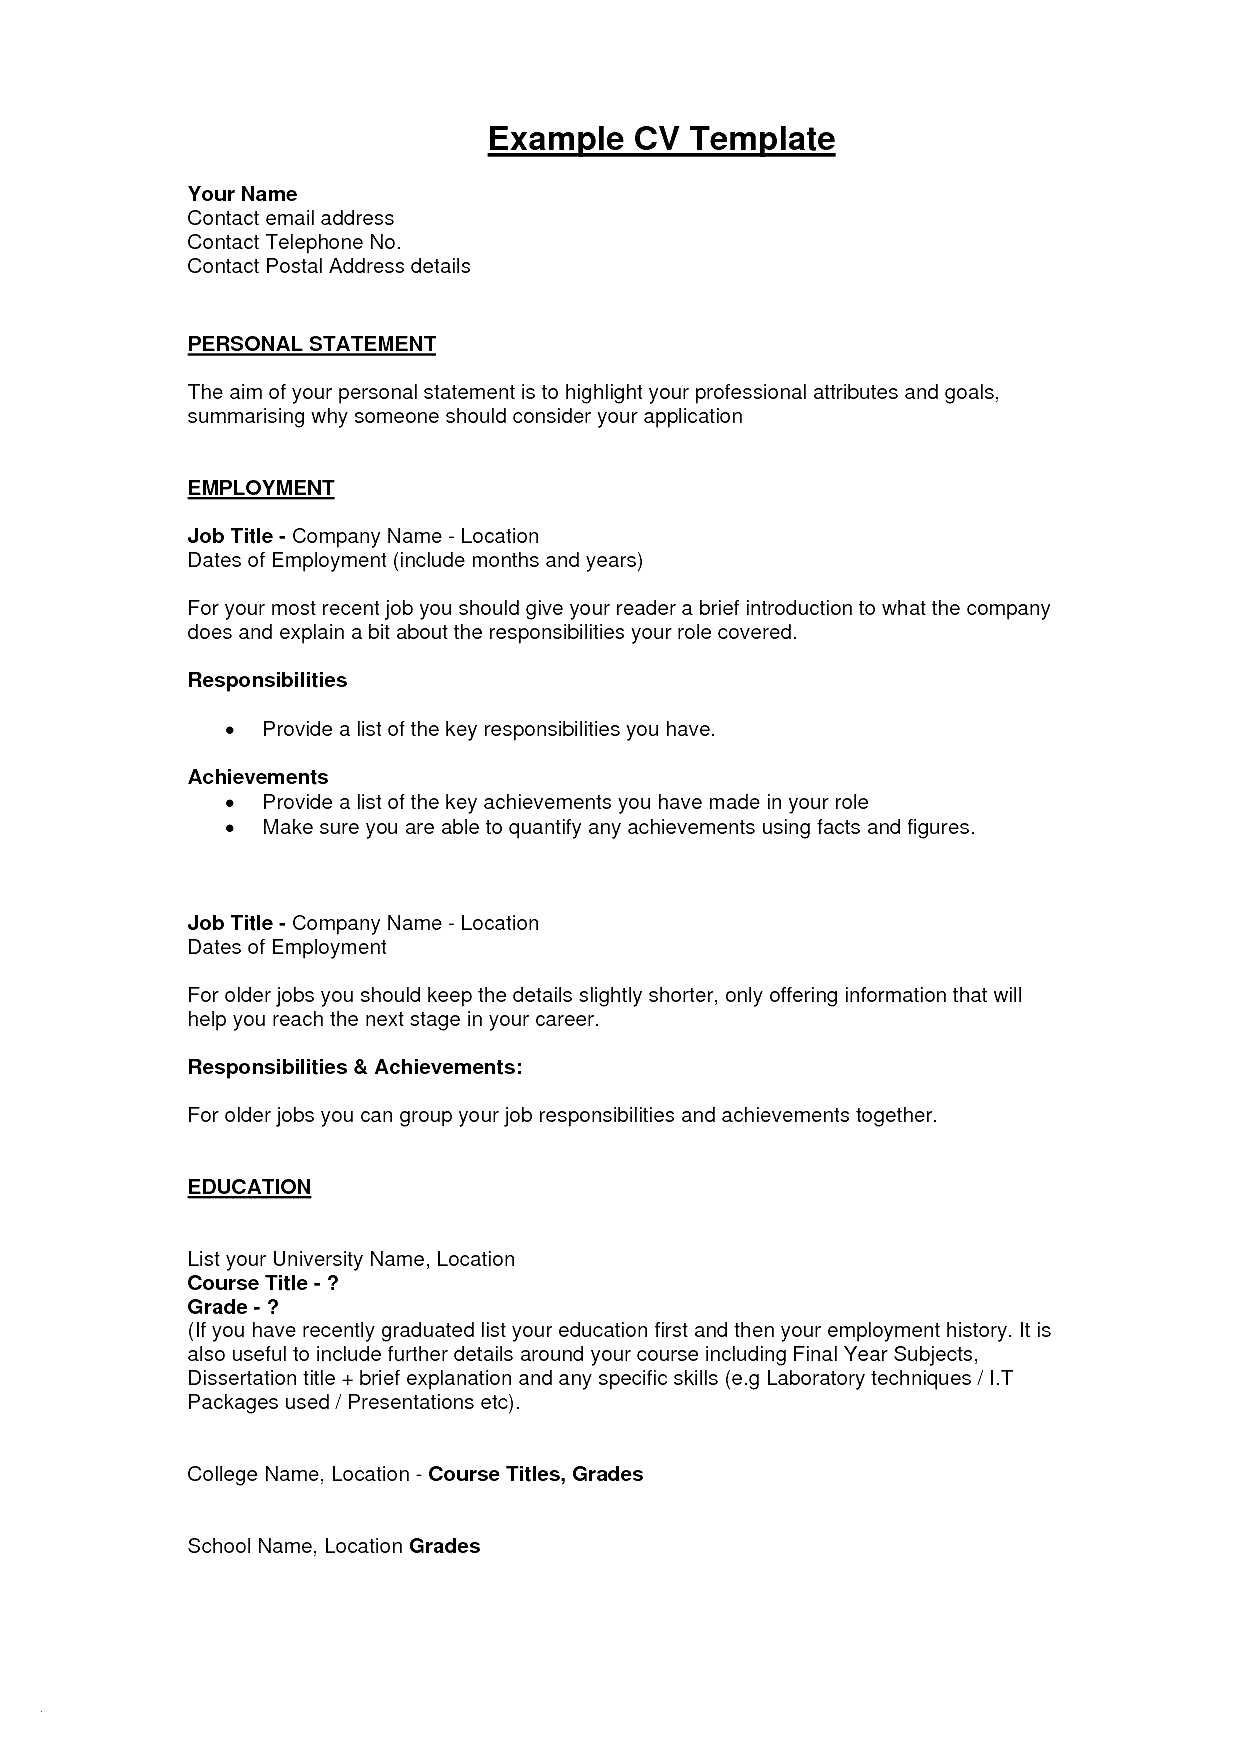 Personal Statement Template Wonderful Chemistry Skills for Resume Awesome Fresh Examples Resumes